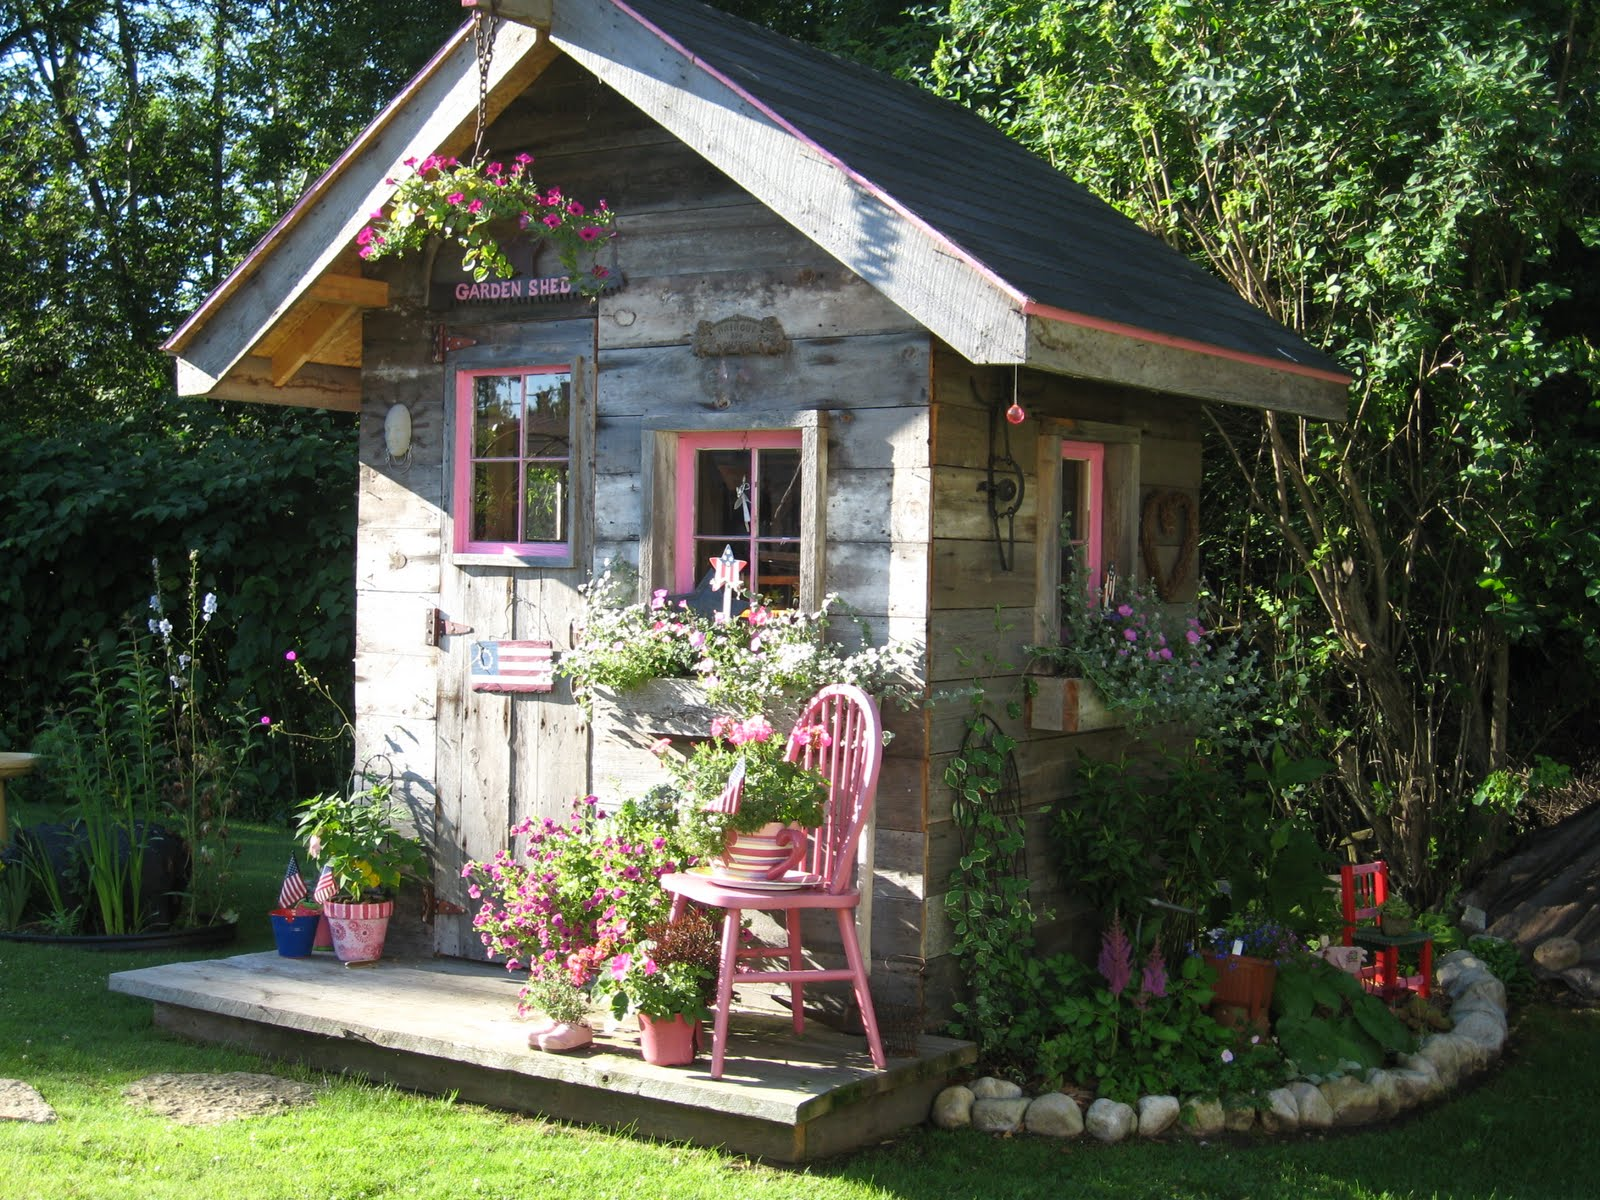 20 wendy houses for the peter pan in you for Outdoor garden shed